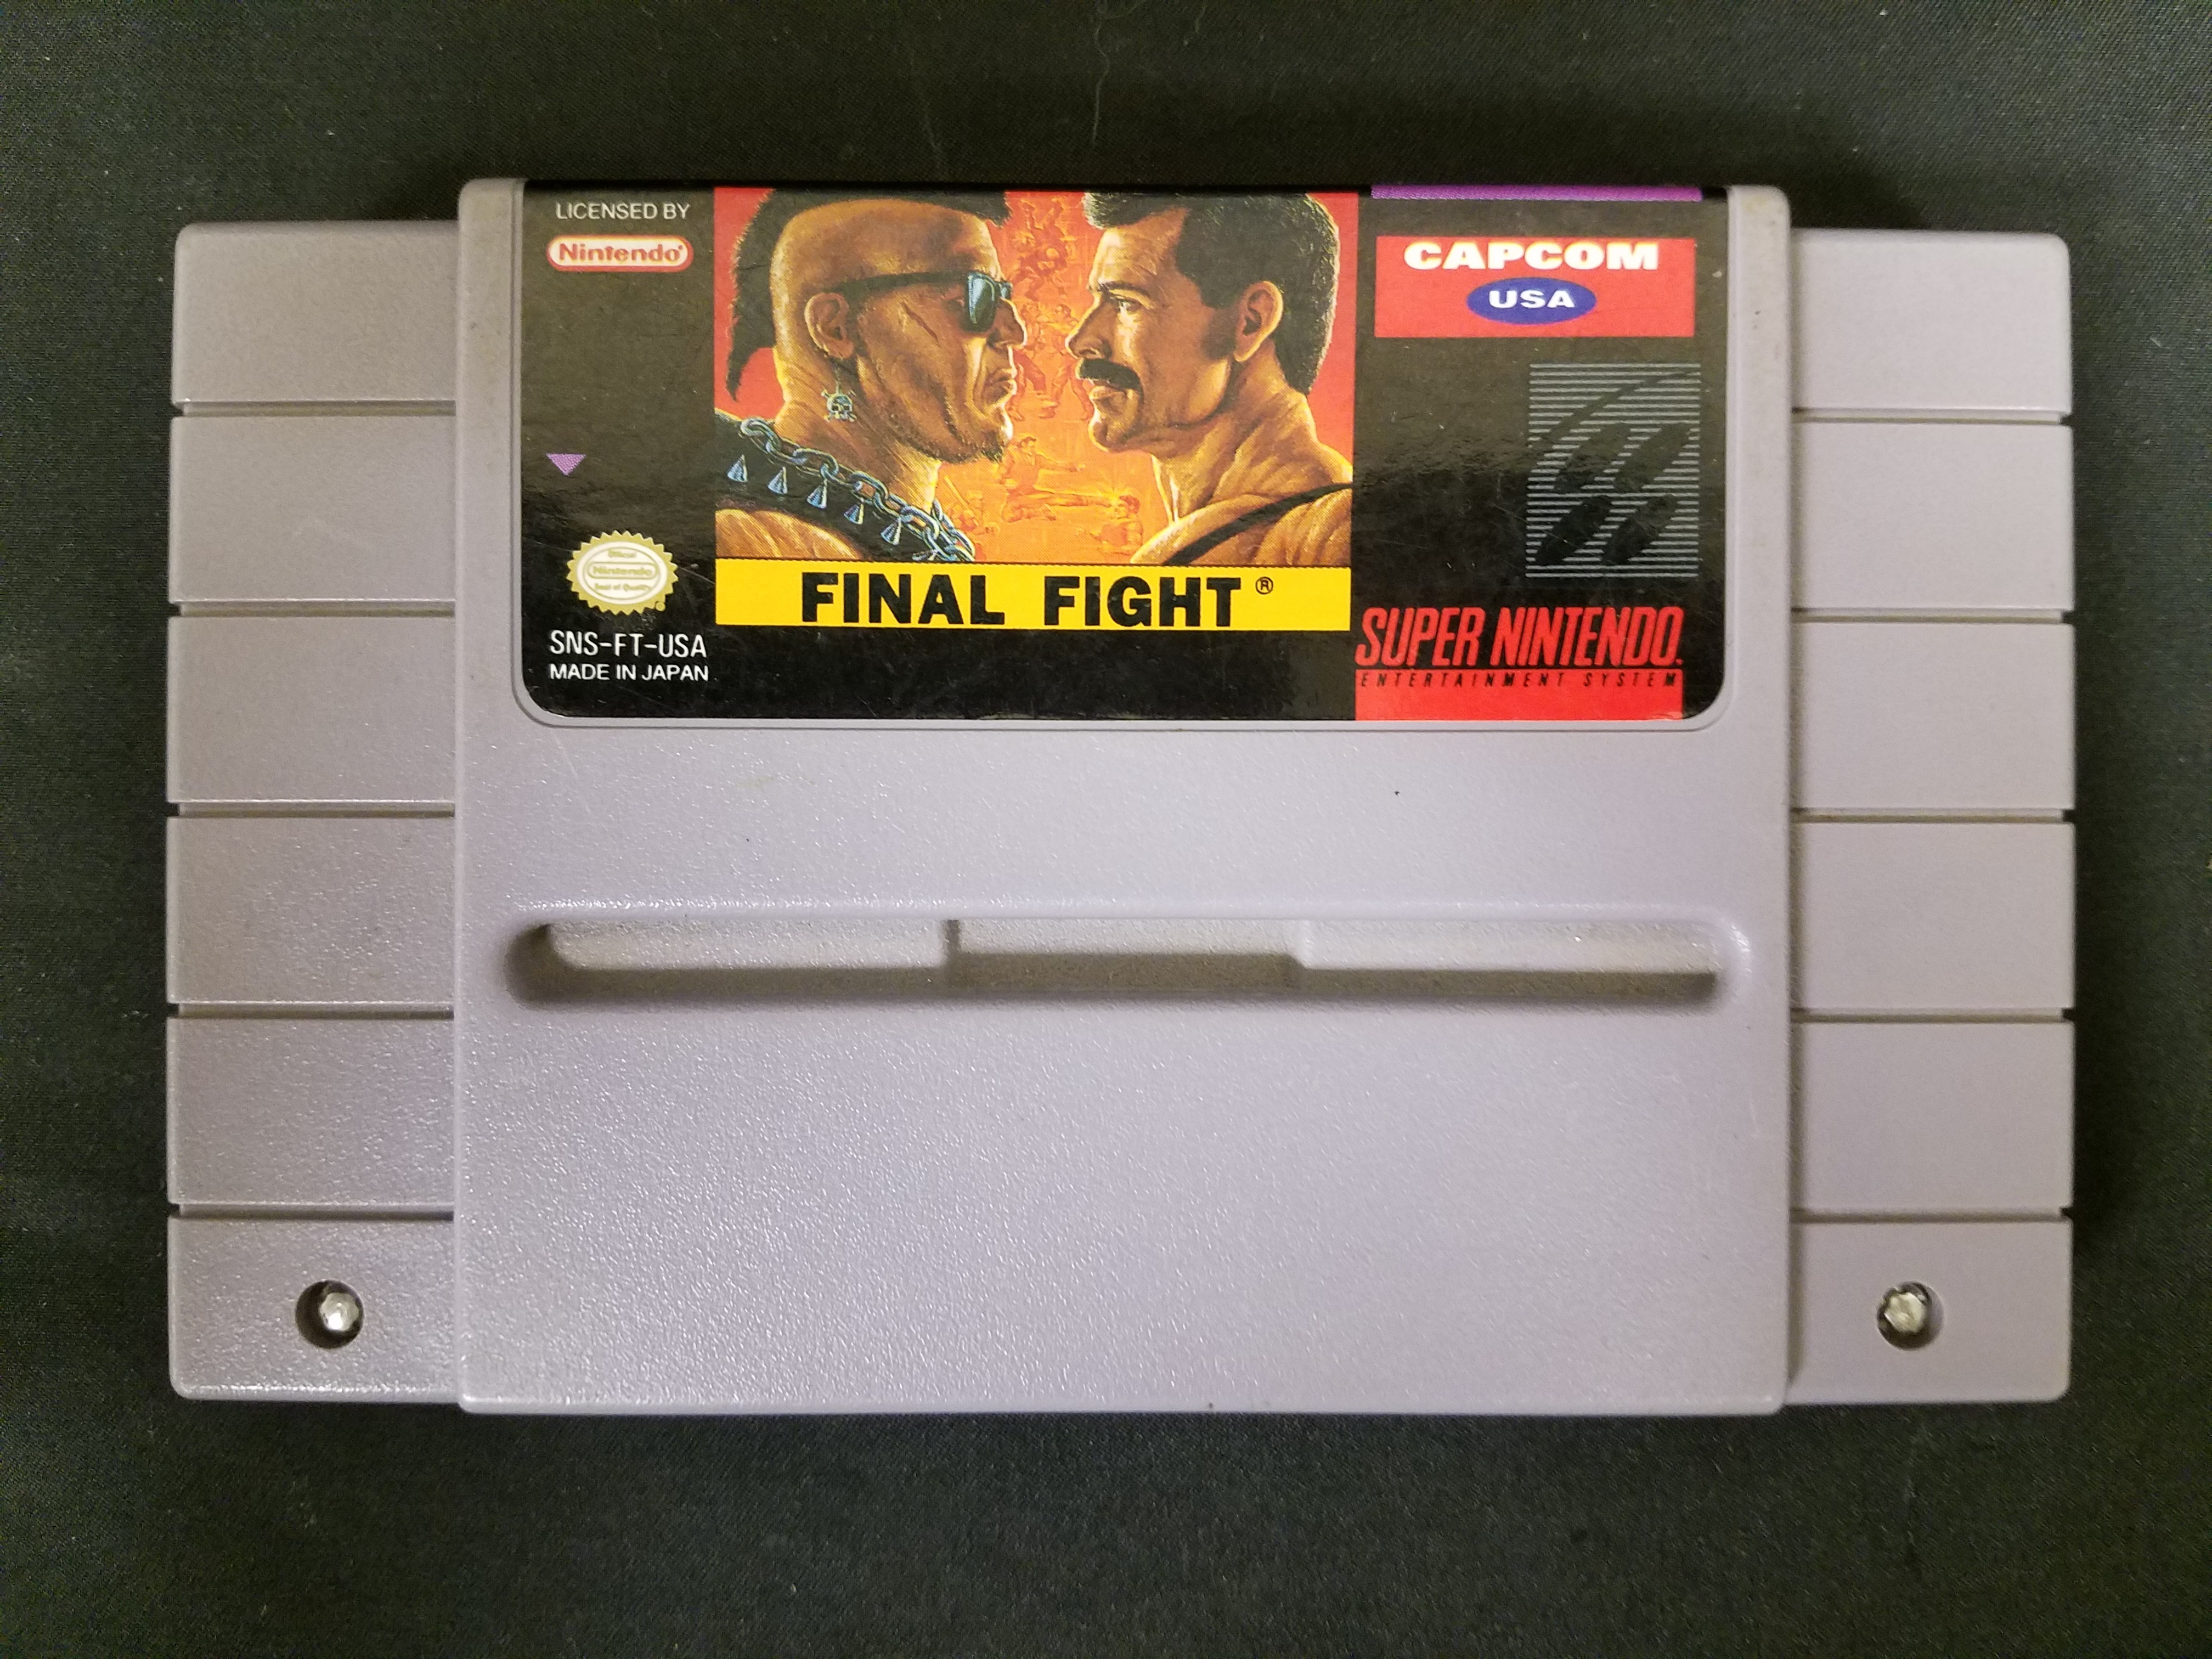 SUPER NINTENDO GAMES - FINAL FIGHT